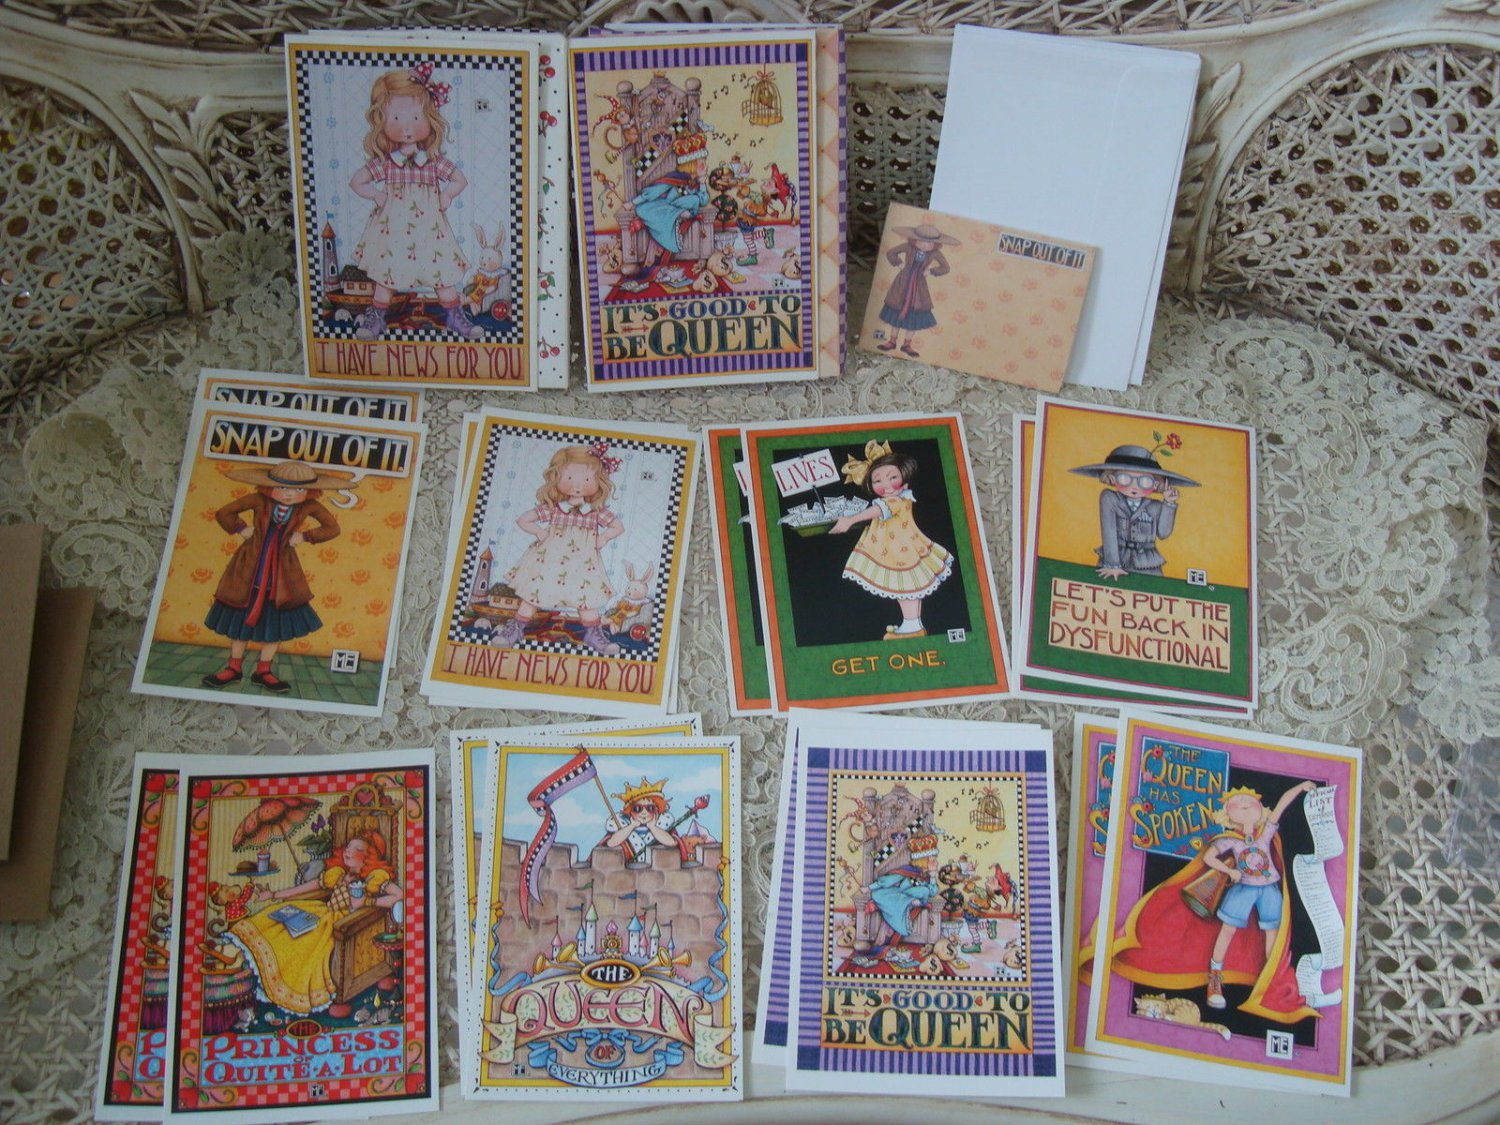 MARY ENGELBREIT 16 WHIMSICAL CARDS & ENVELOPES PLUS SNAP OUT OF IT POST IT NOTES